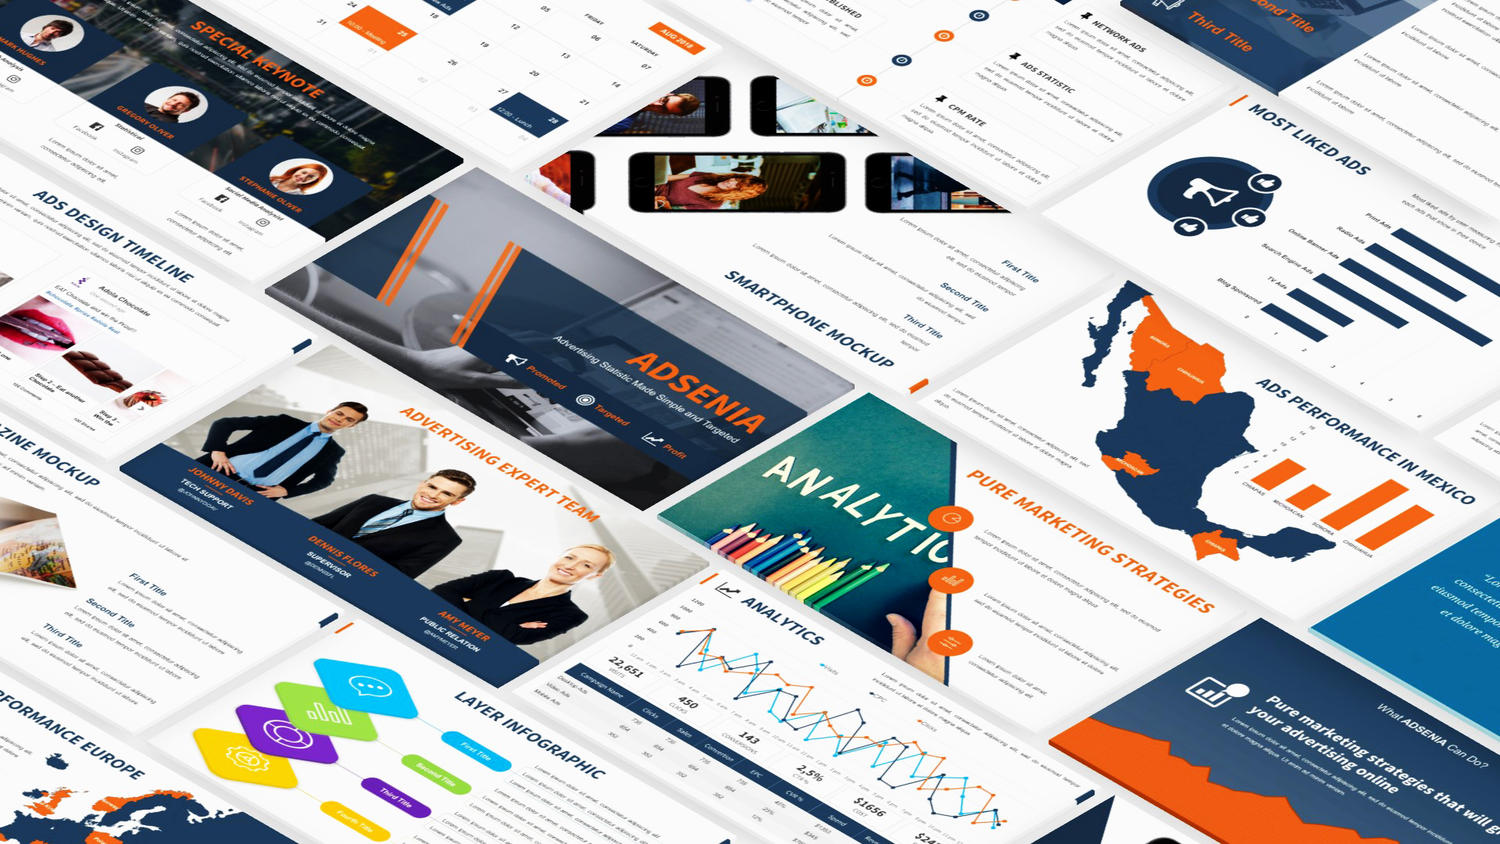 Professional Presentation Template Services by arvaone - 108966